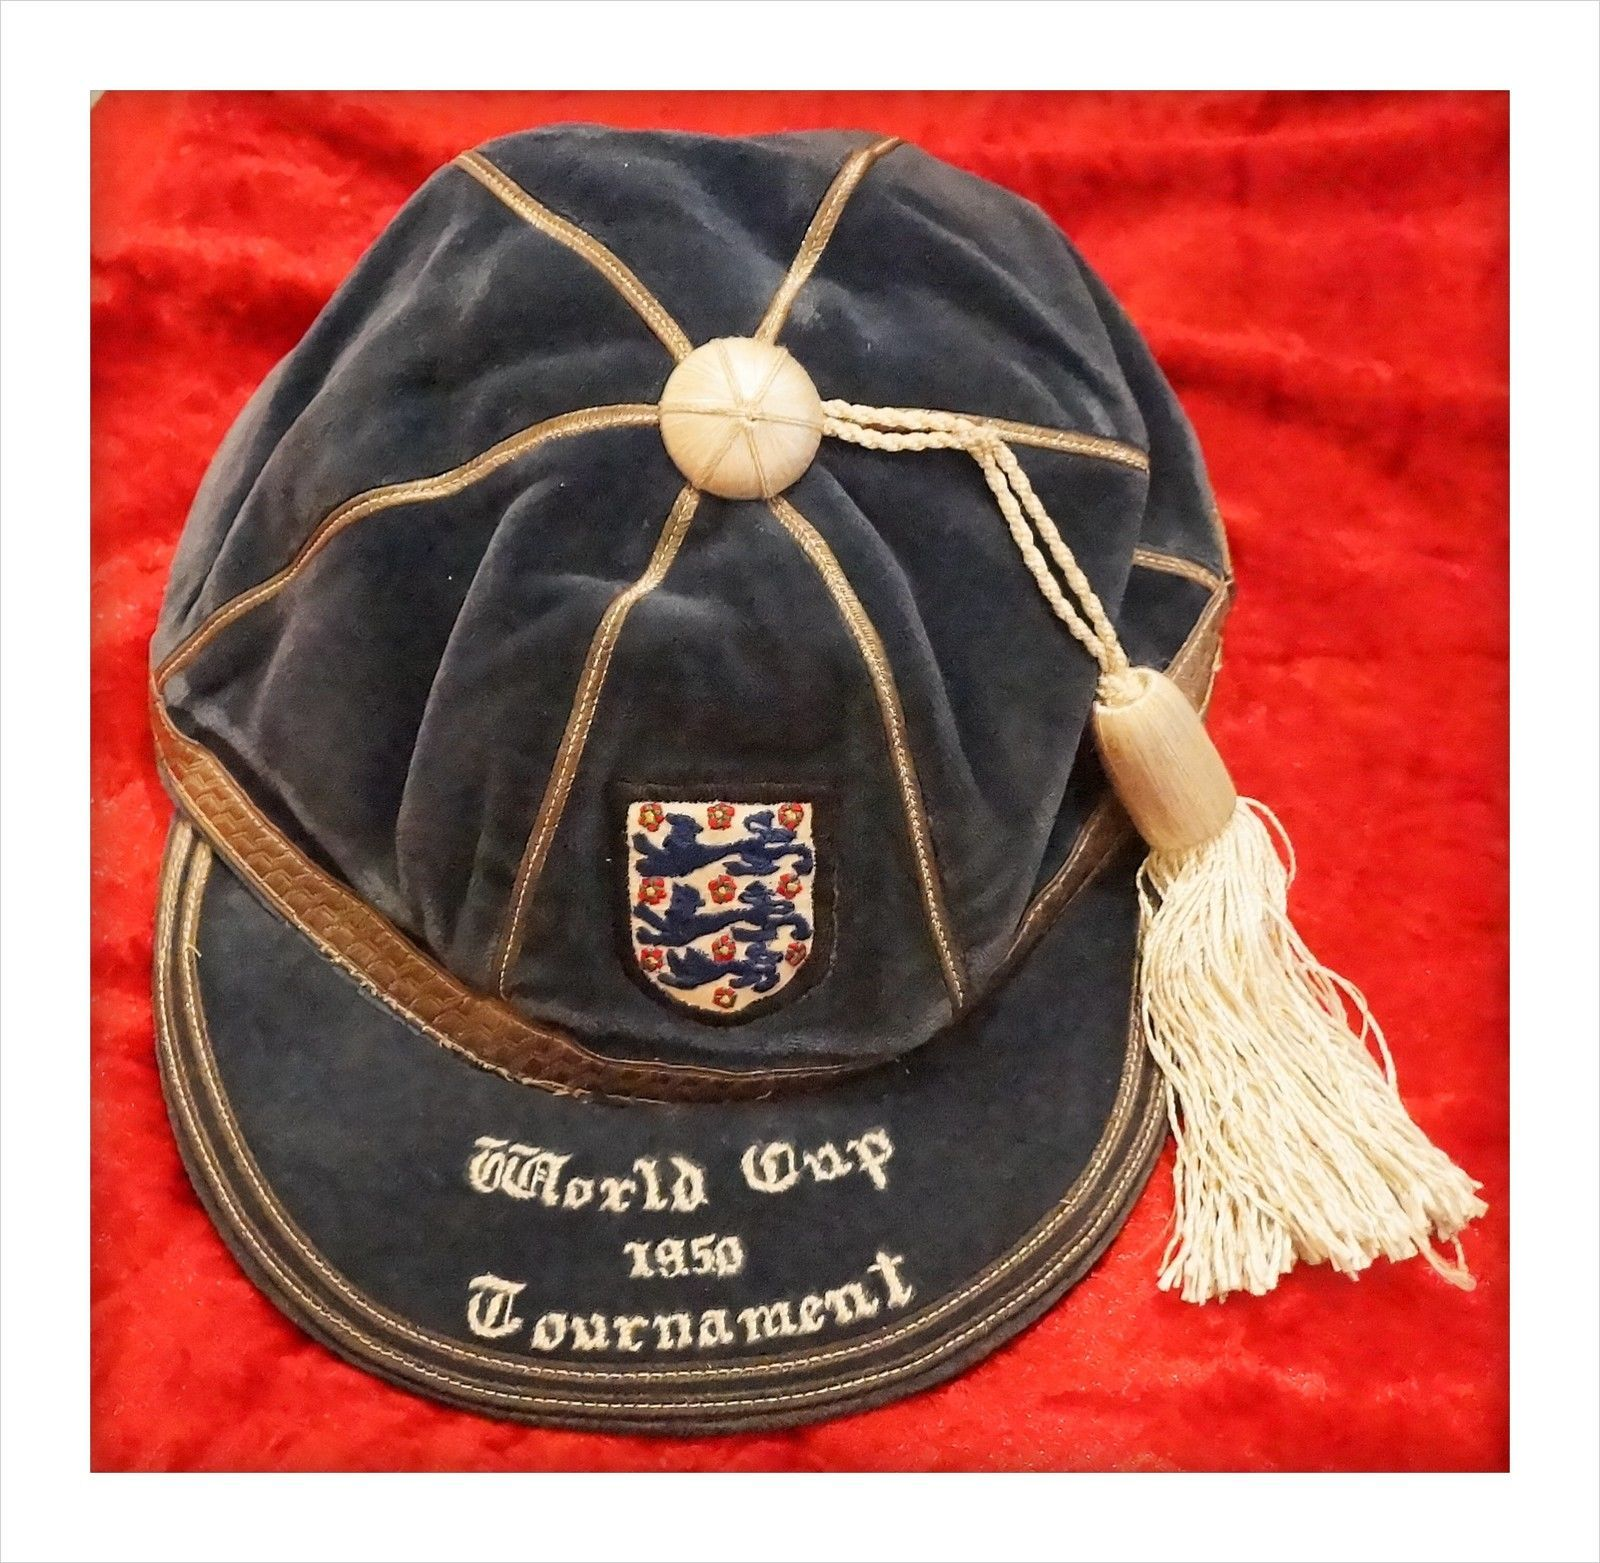 19ac19eb784 Very Rare 1950 England World Cup Football Cap. Wolves Goalkeeper ...